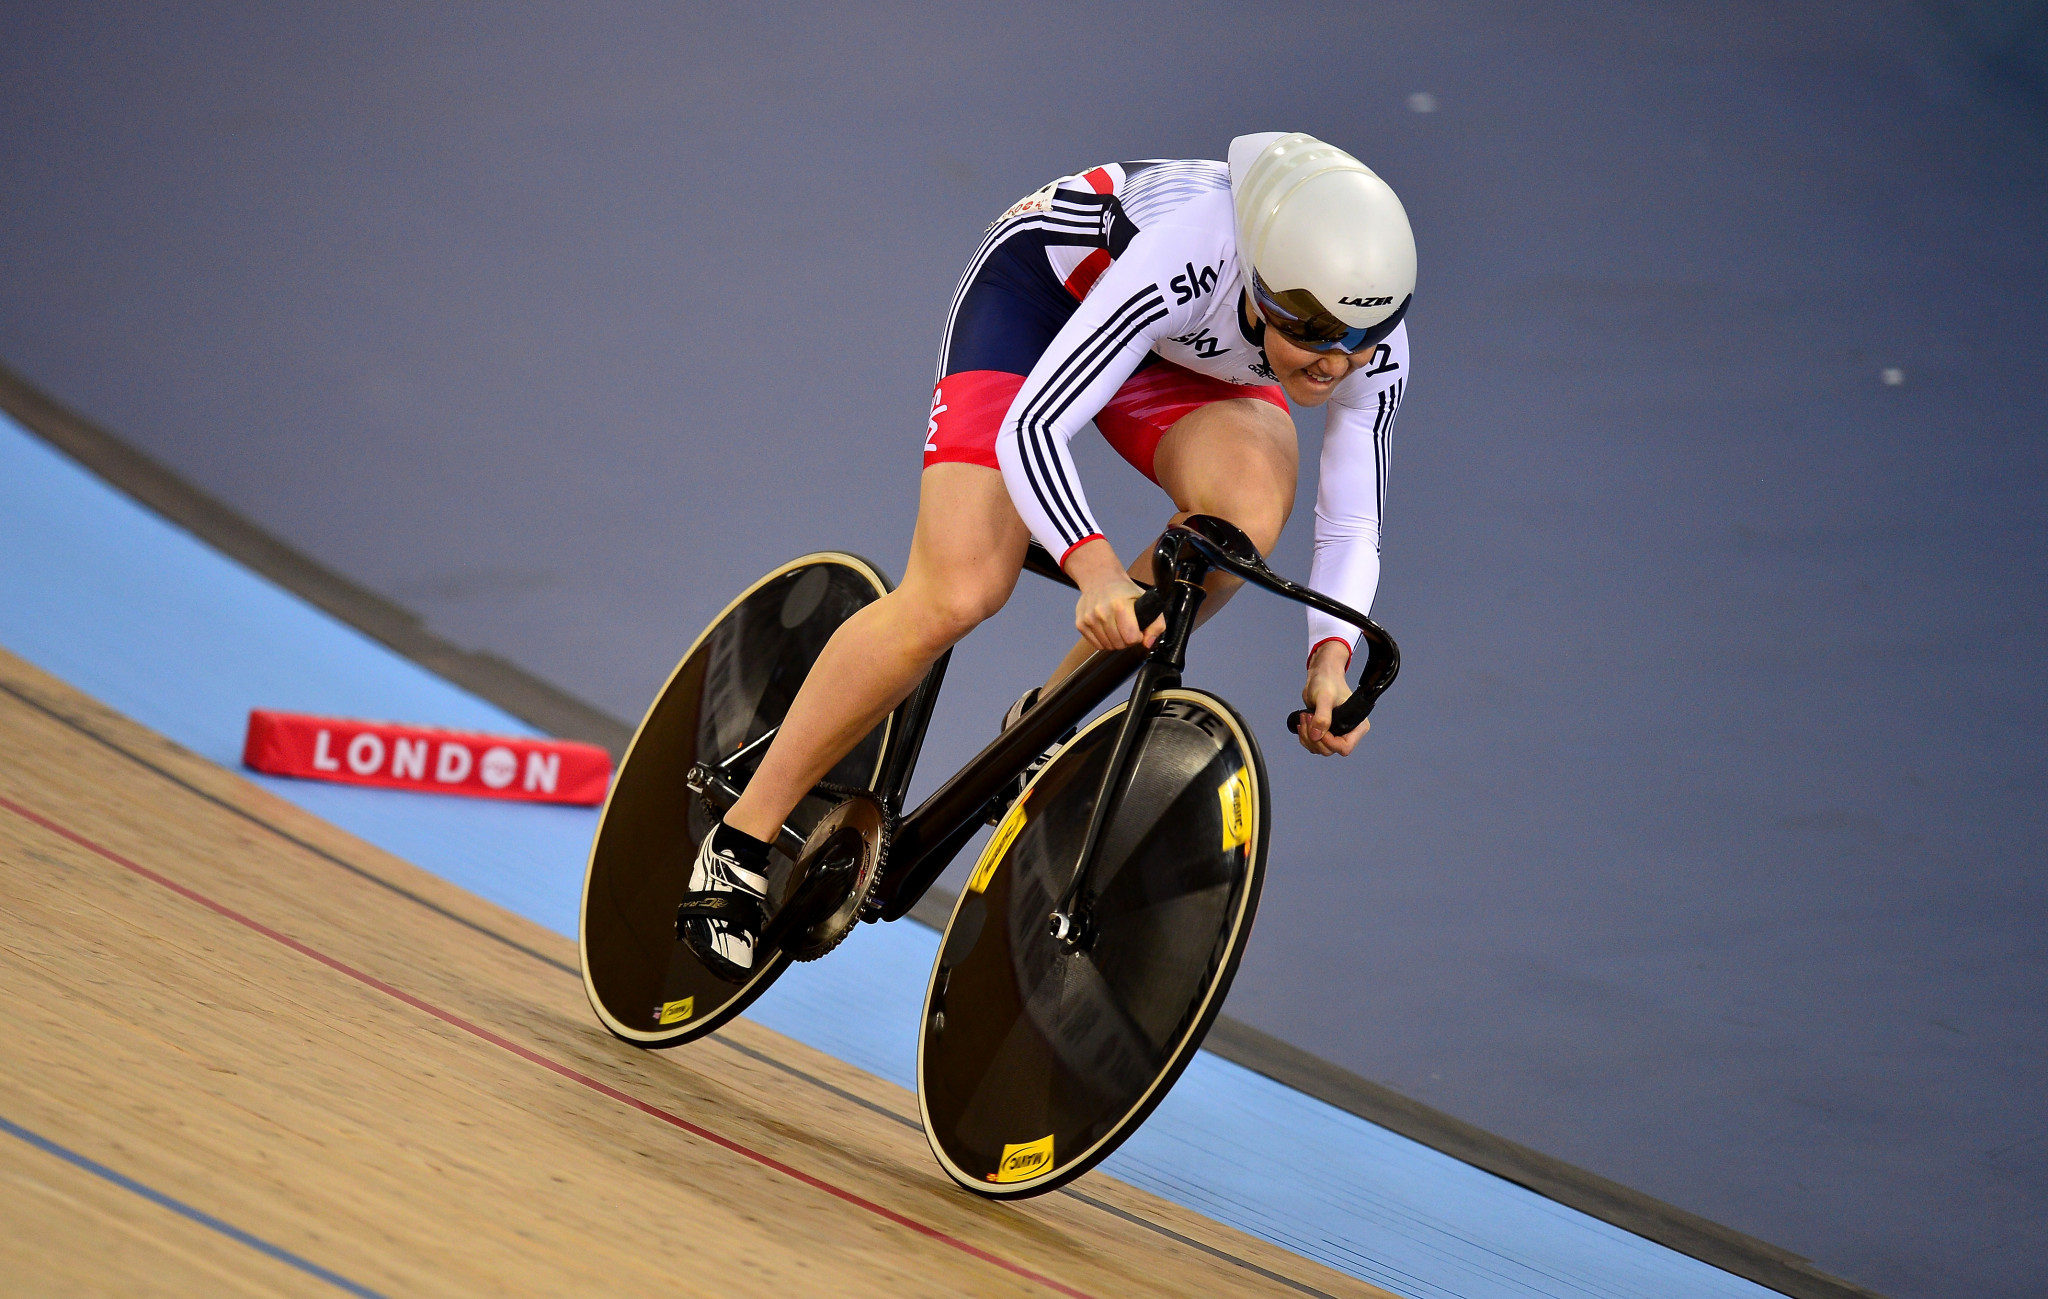 Jess Varnish is seeking to claim that she could have been regarded as an employee of UK Sport and British Cycling ©Getty Images